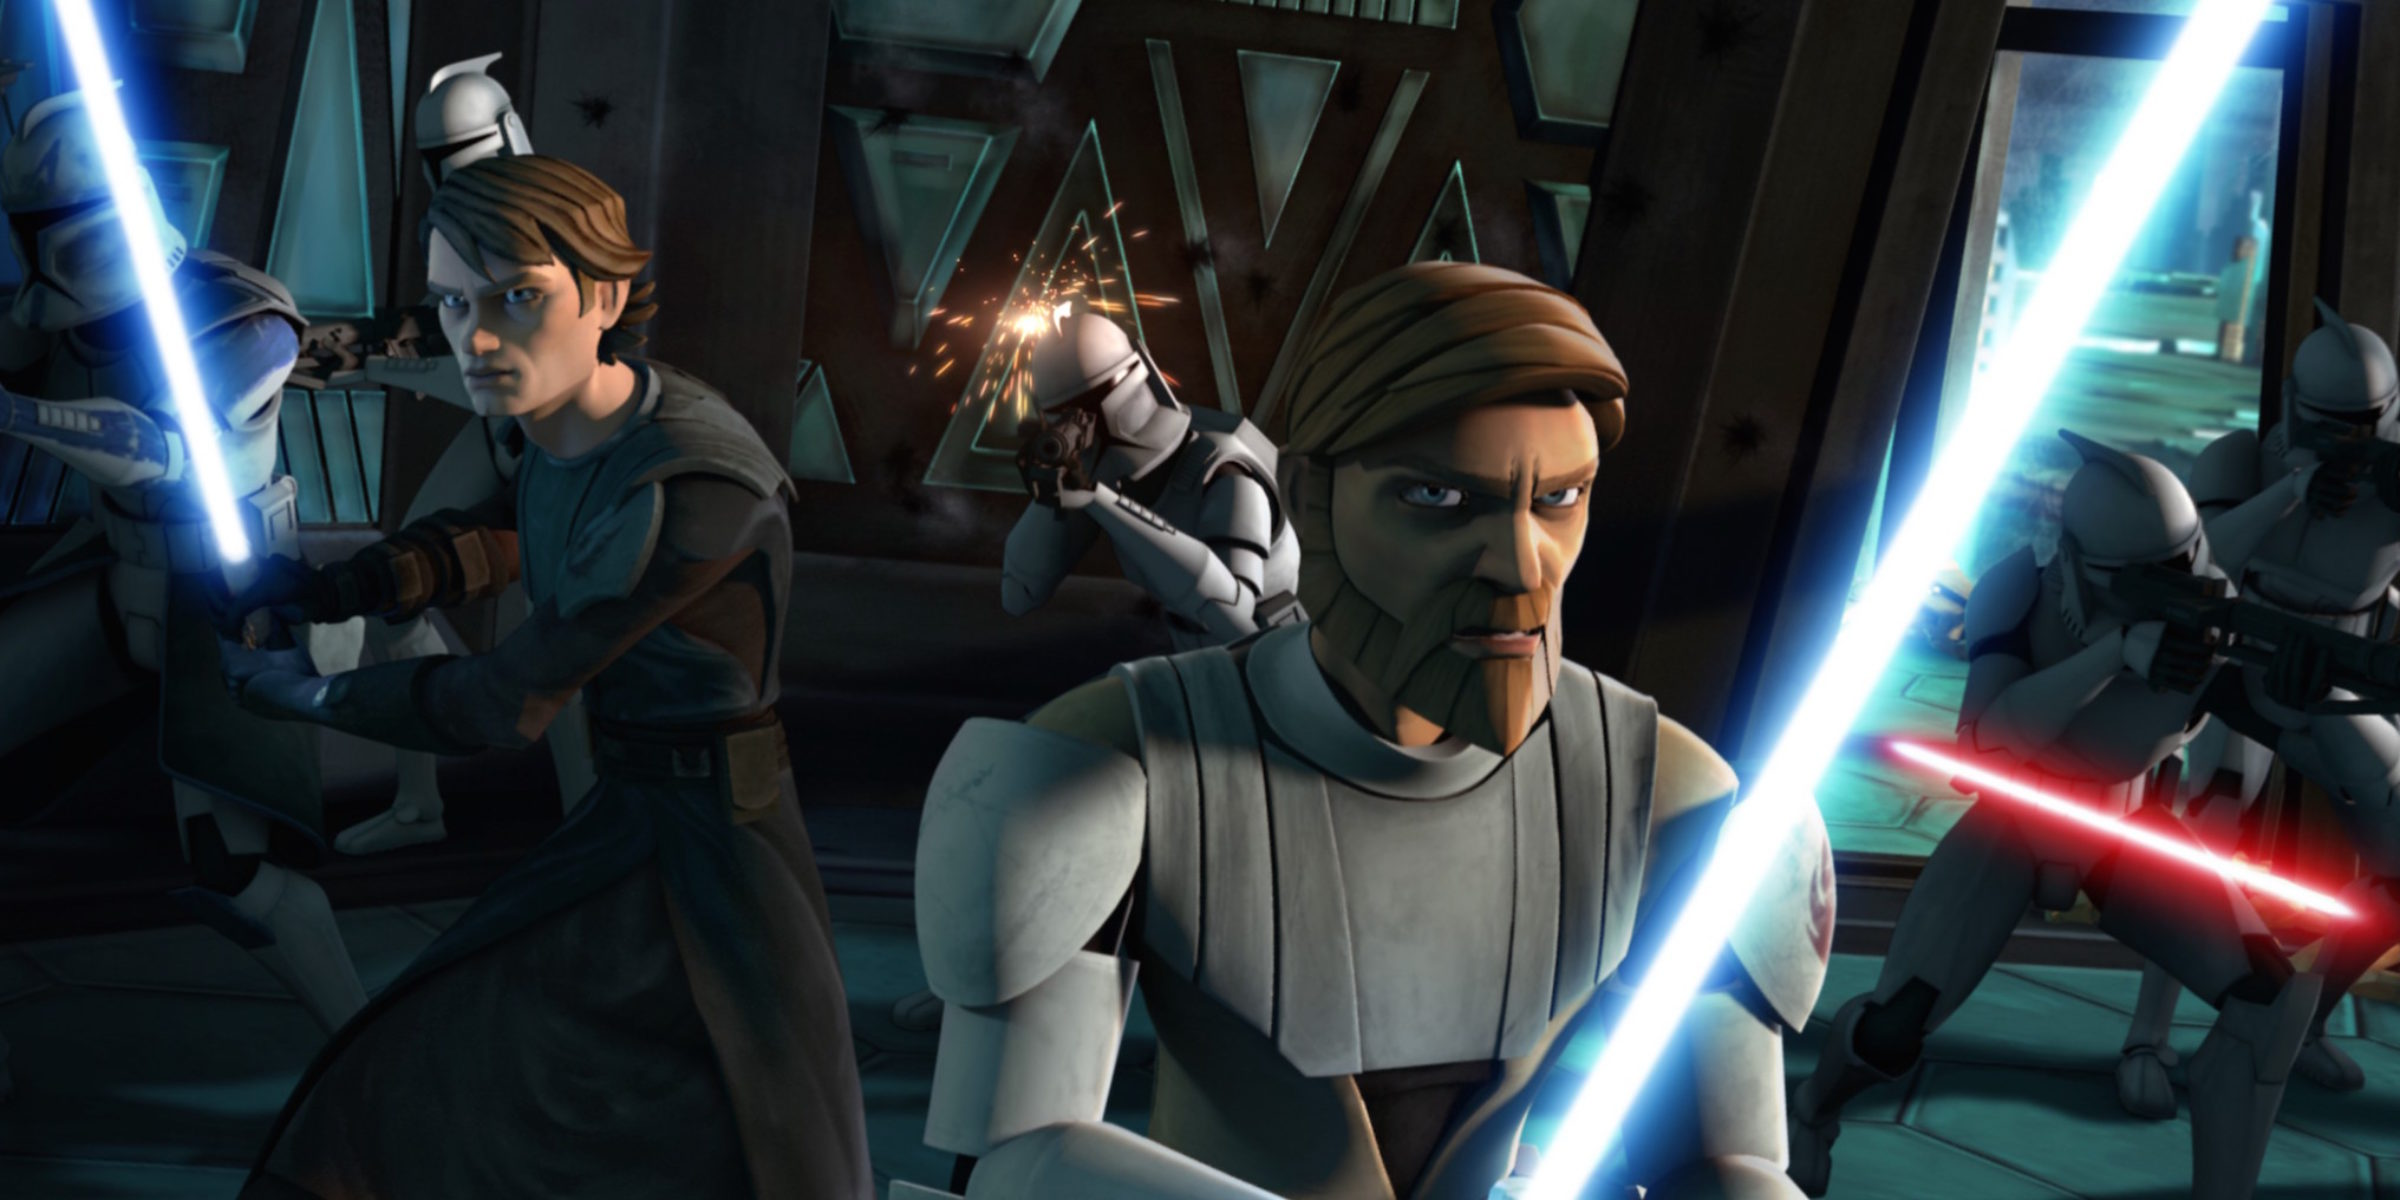 Obi-Wan and Anakin in The Clone Wars